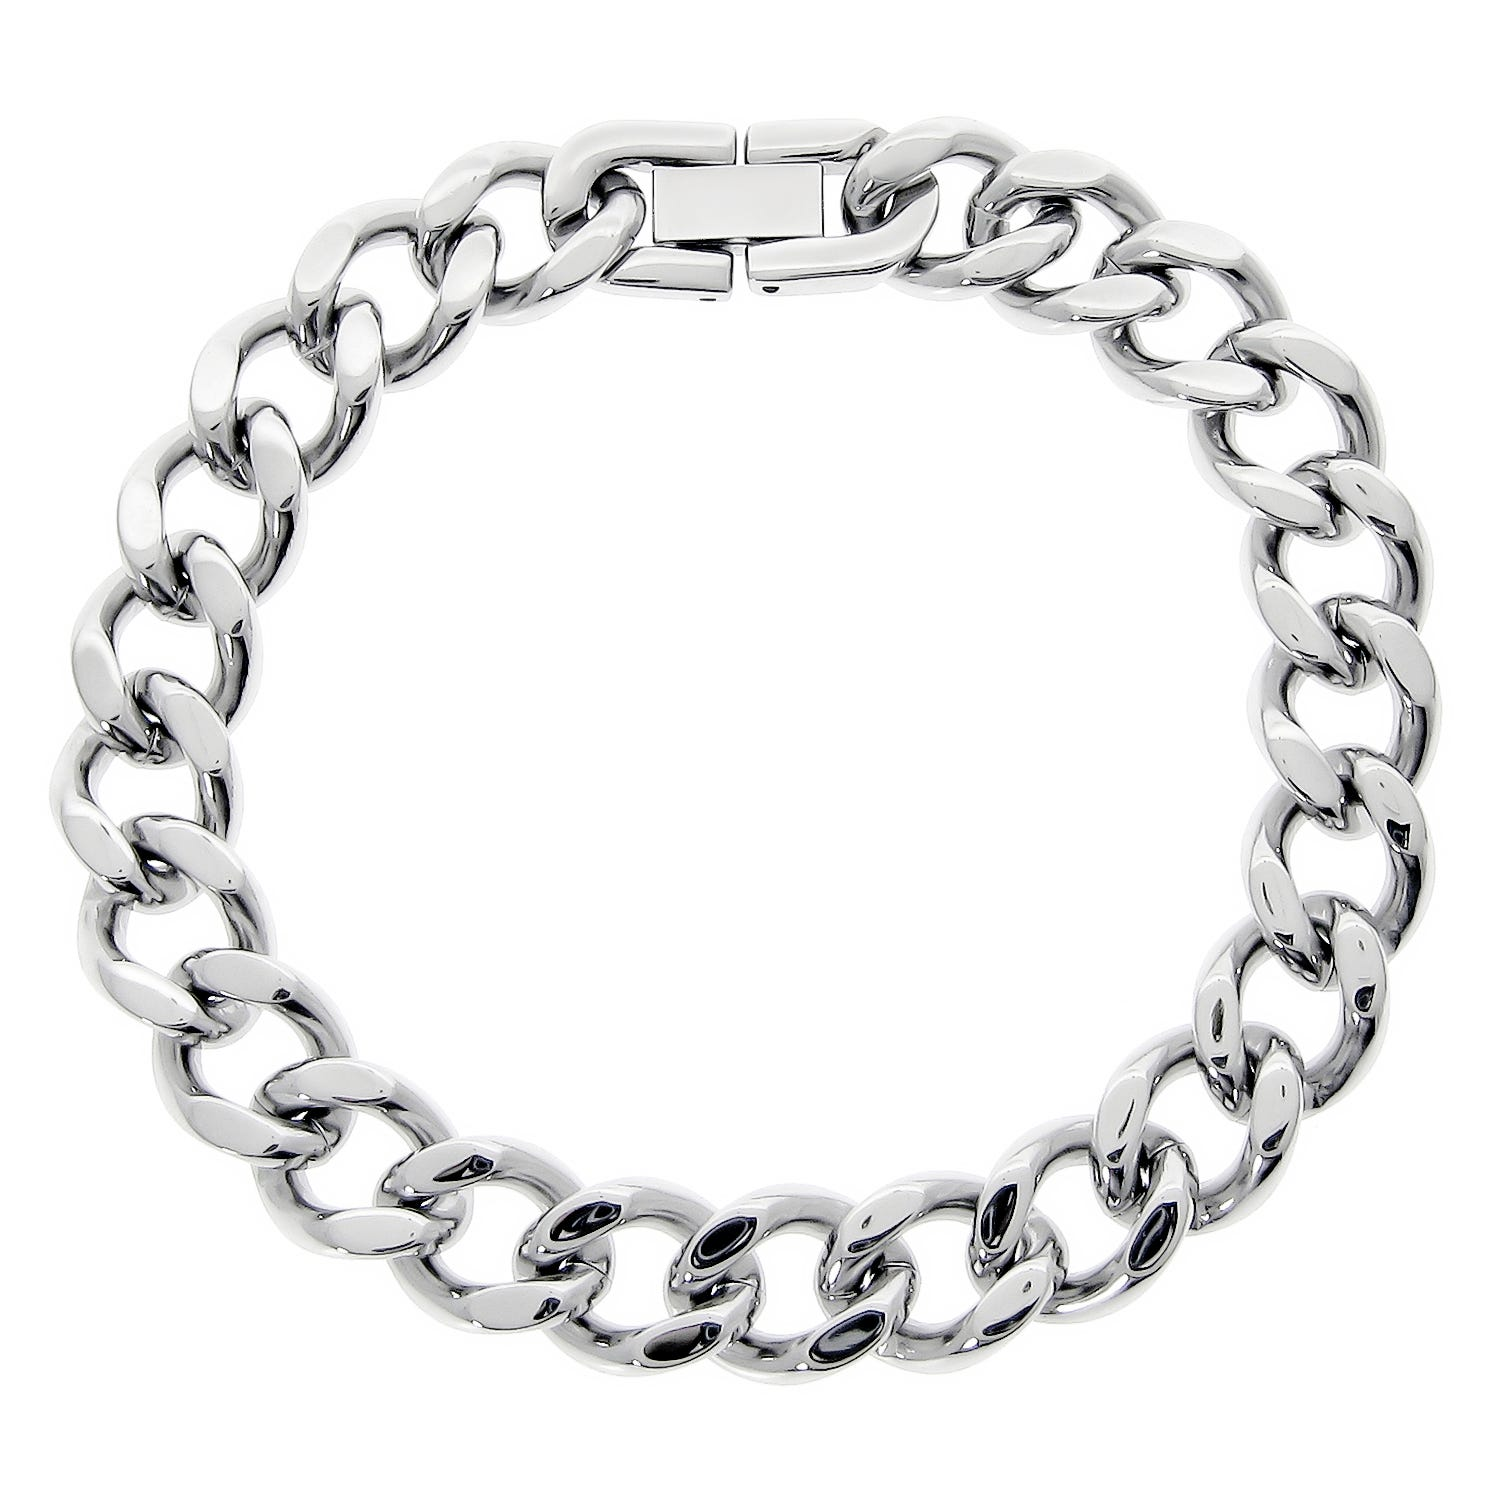 Stainless Steel Chunky Chain Link Bracelet